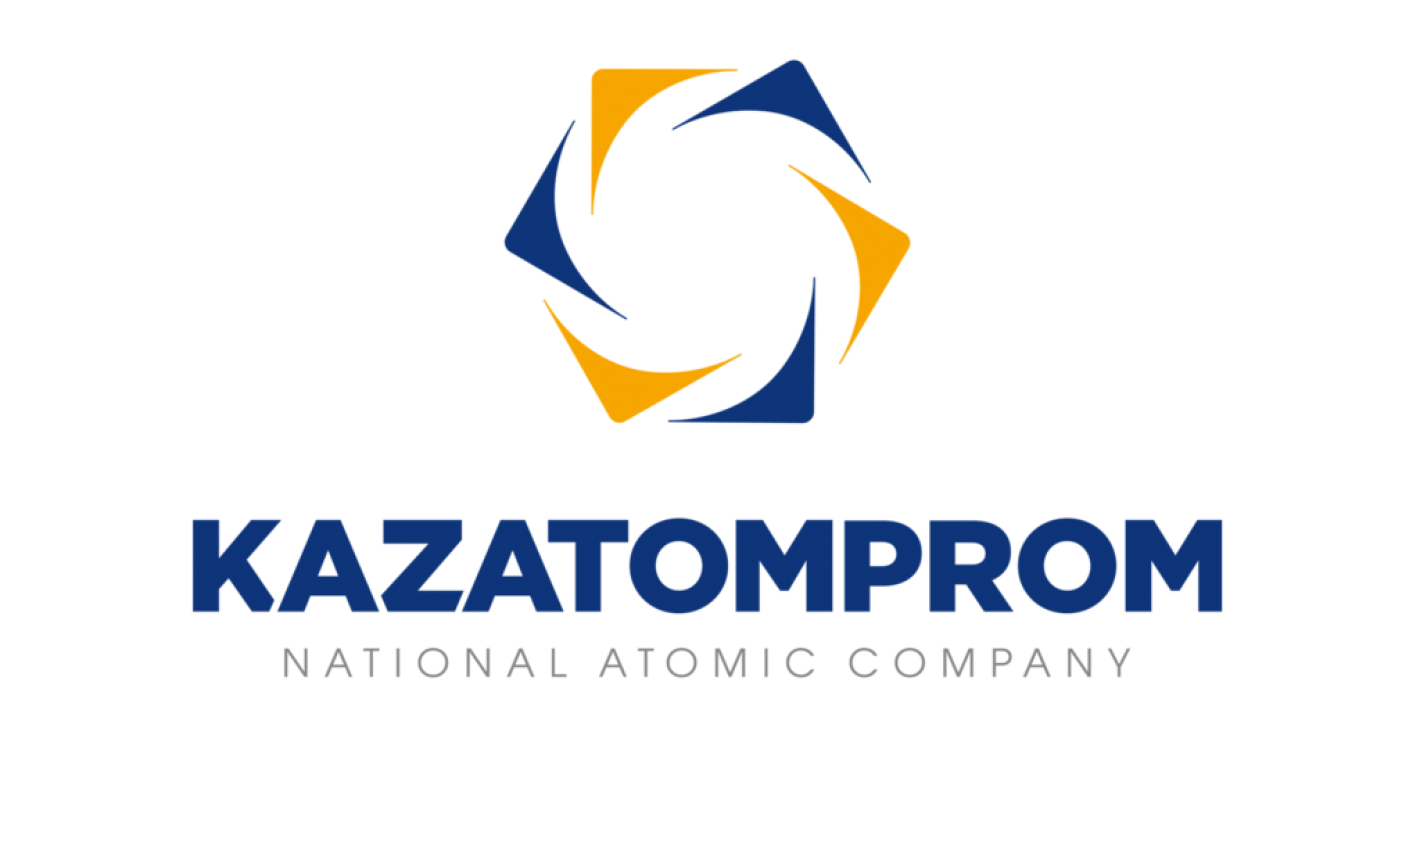 Kazatomprom responds to section 232 decision